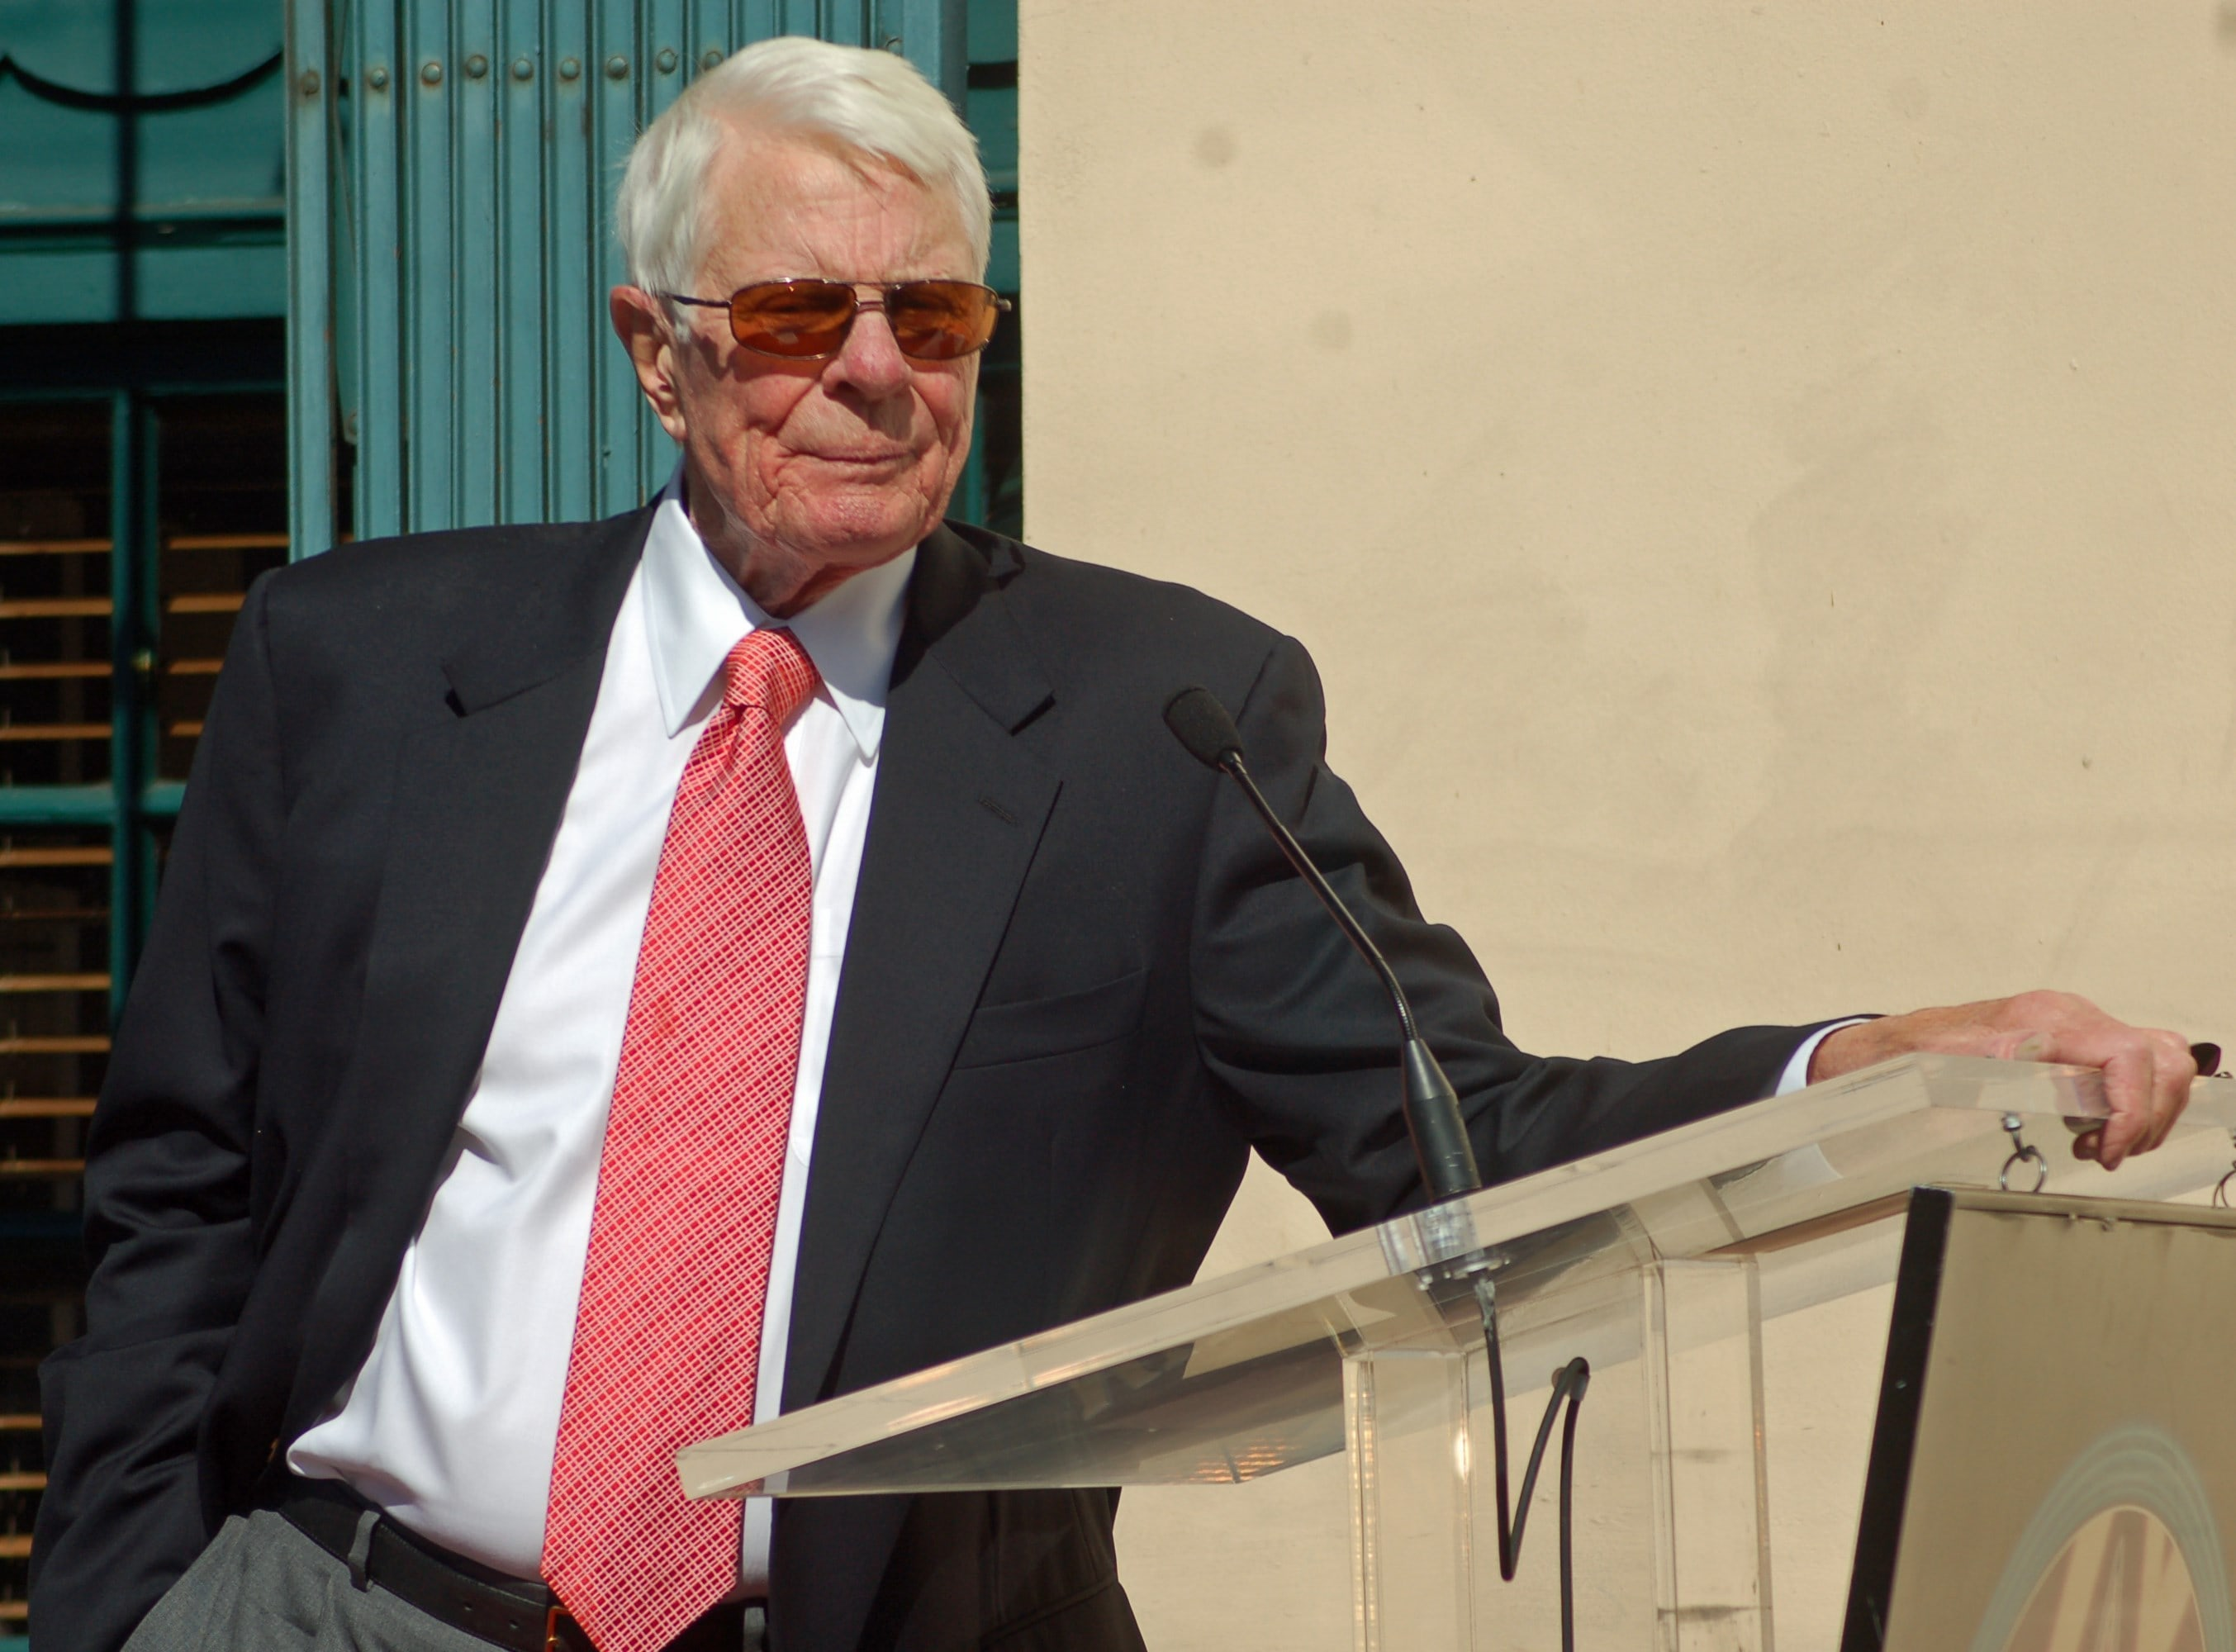 Peter Graves Wallpapers hd